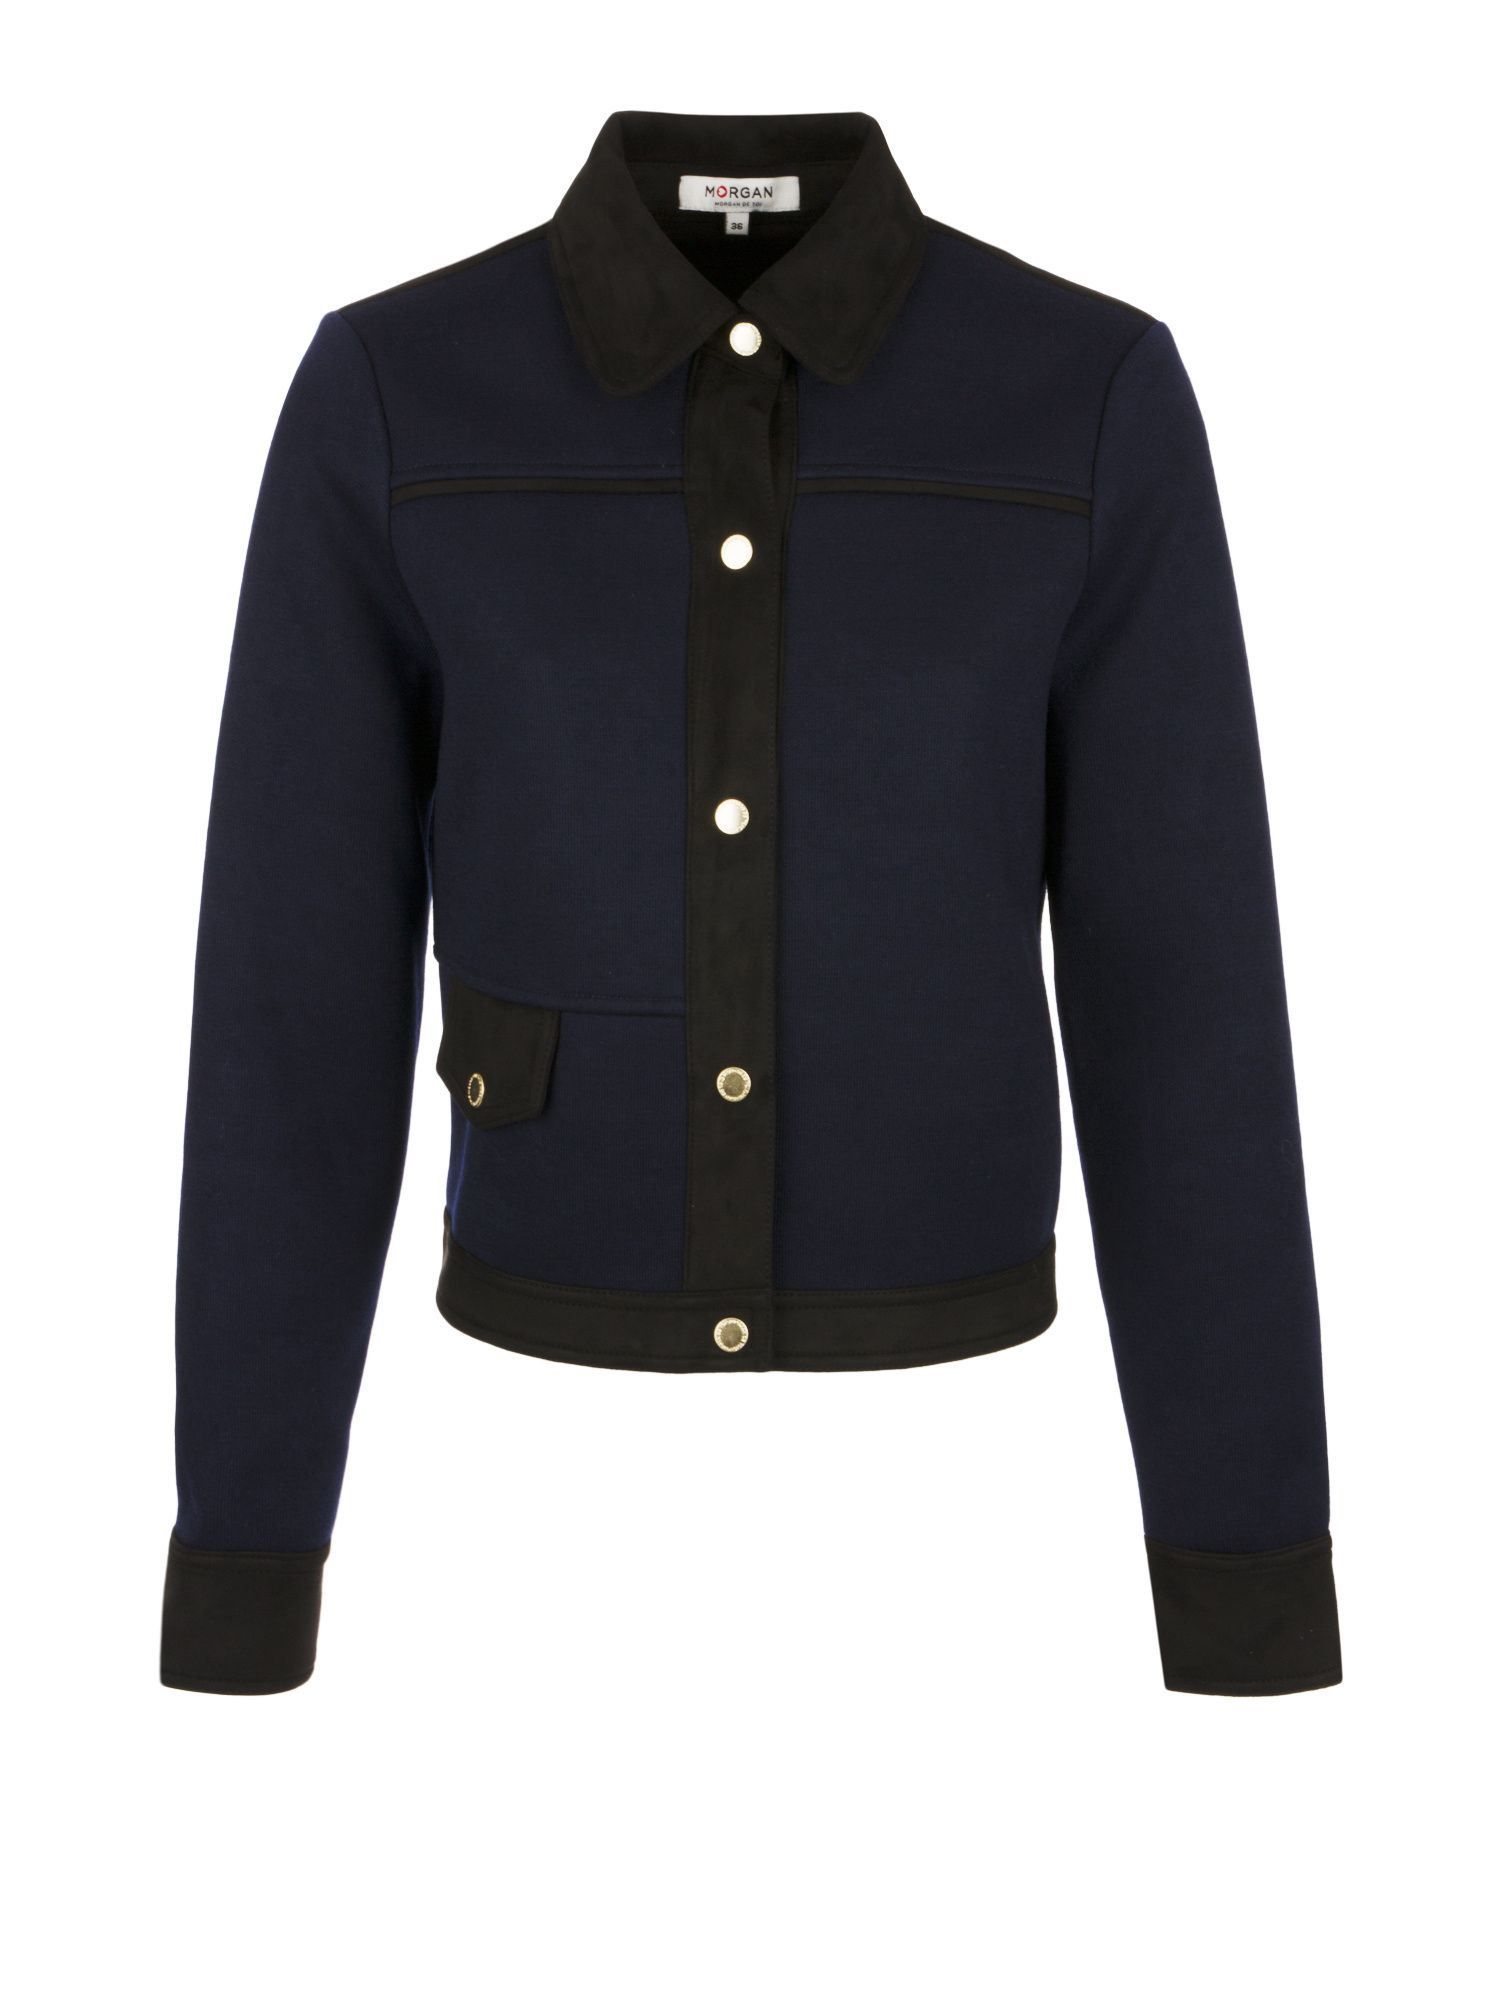 Morgan Suede And Knit Jacket, Black